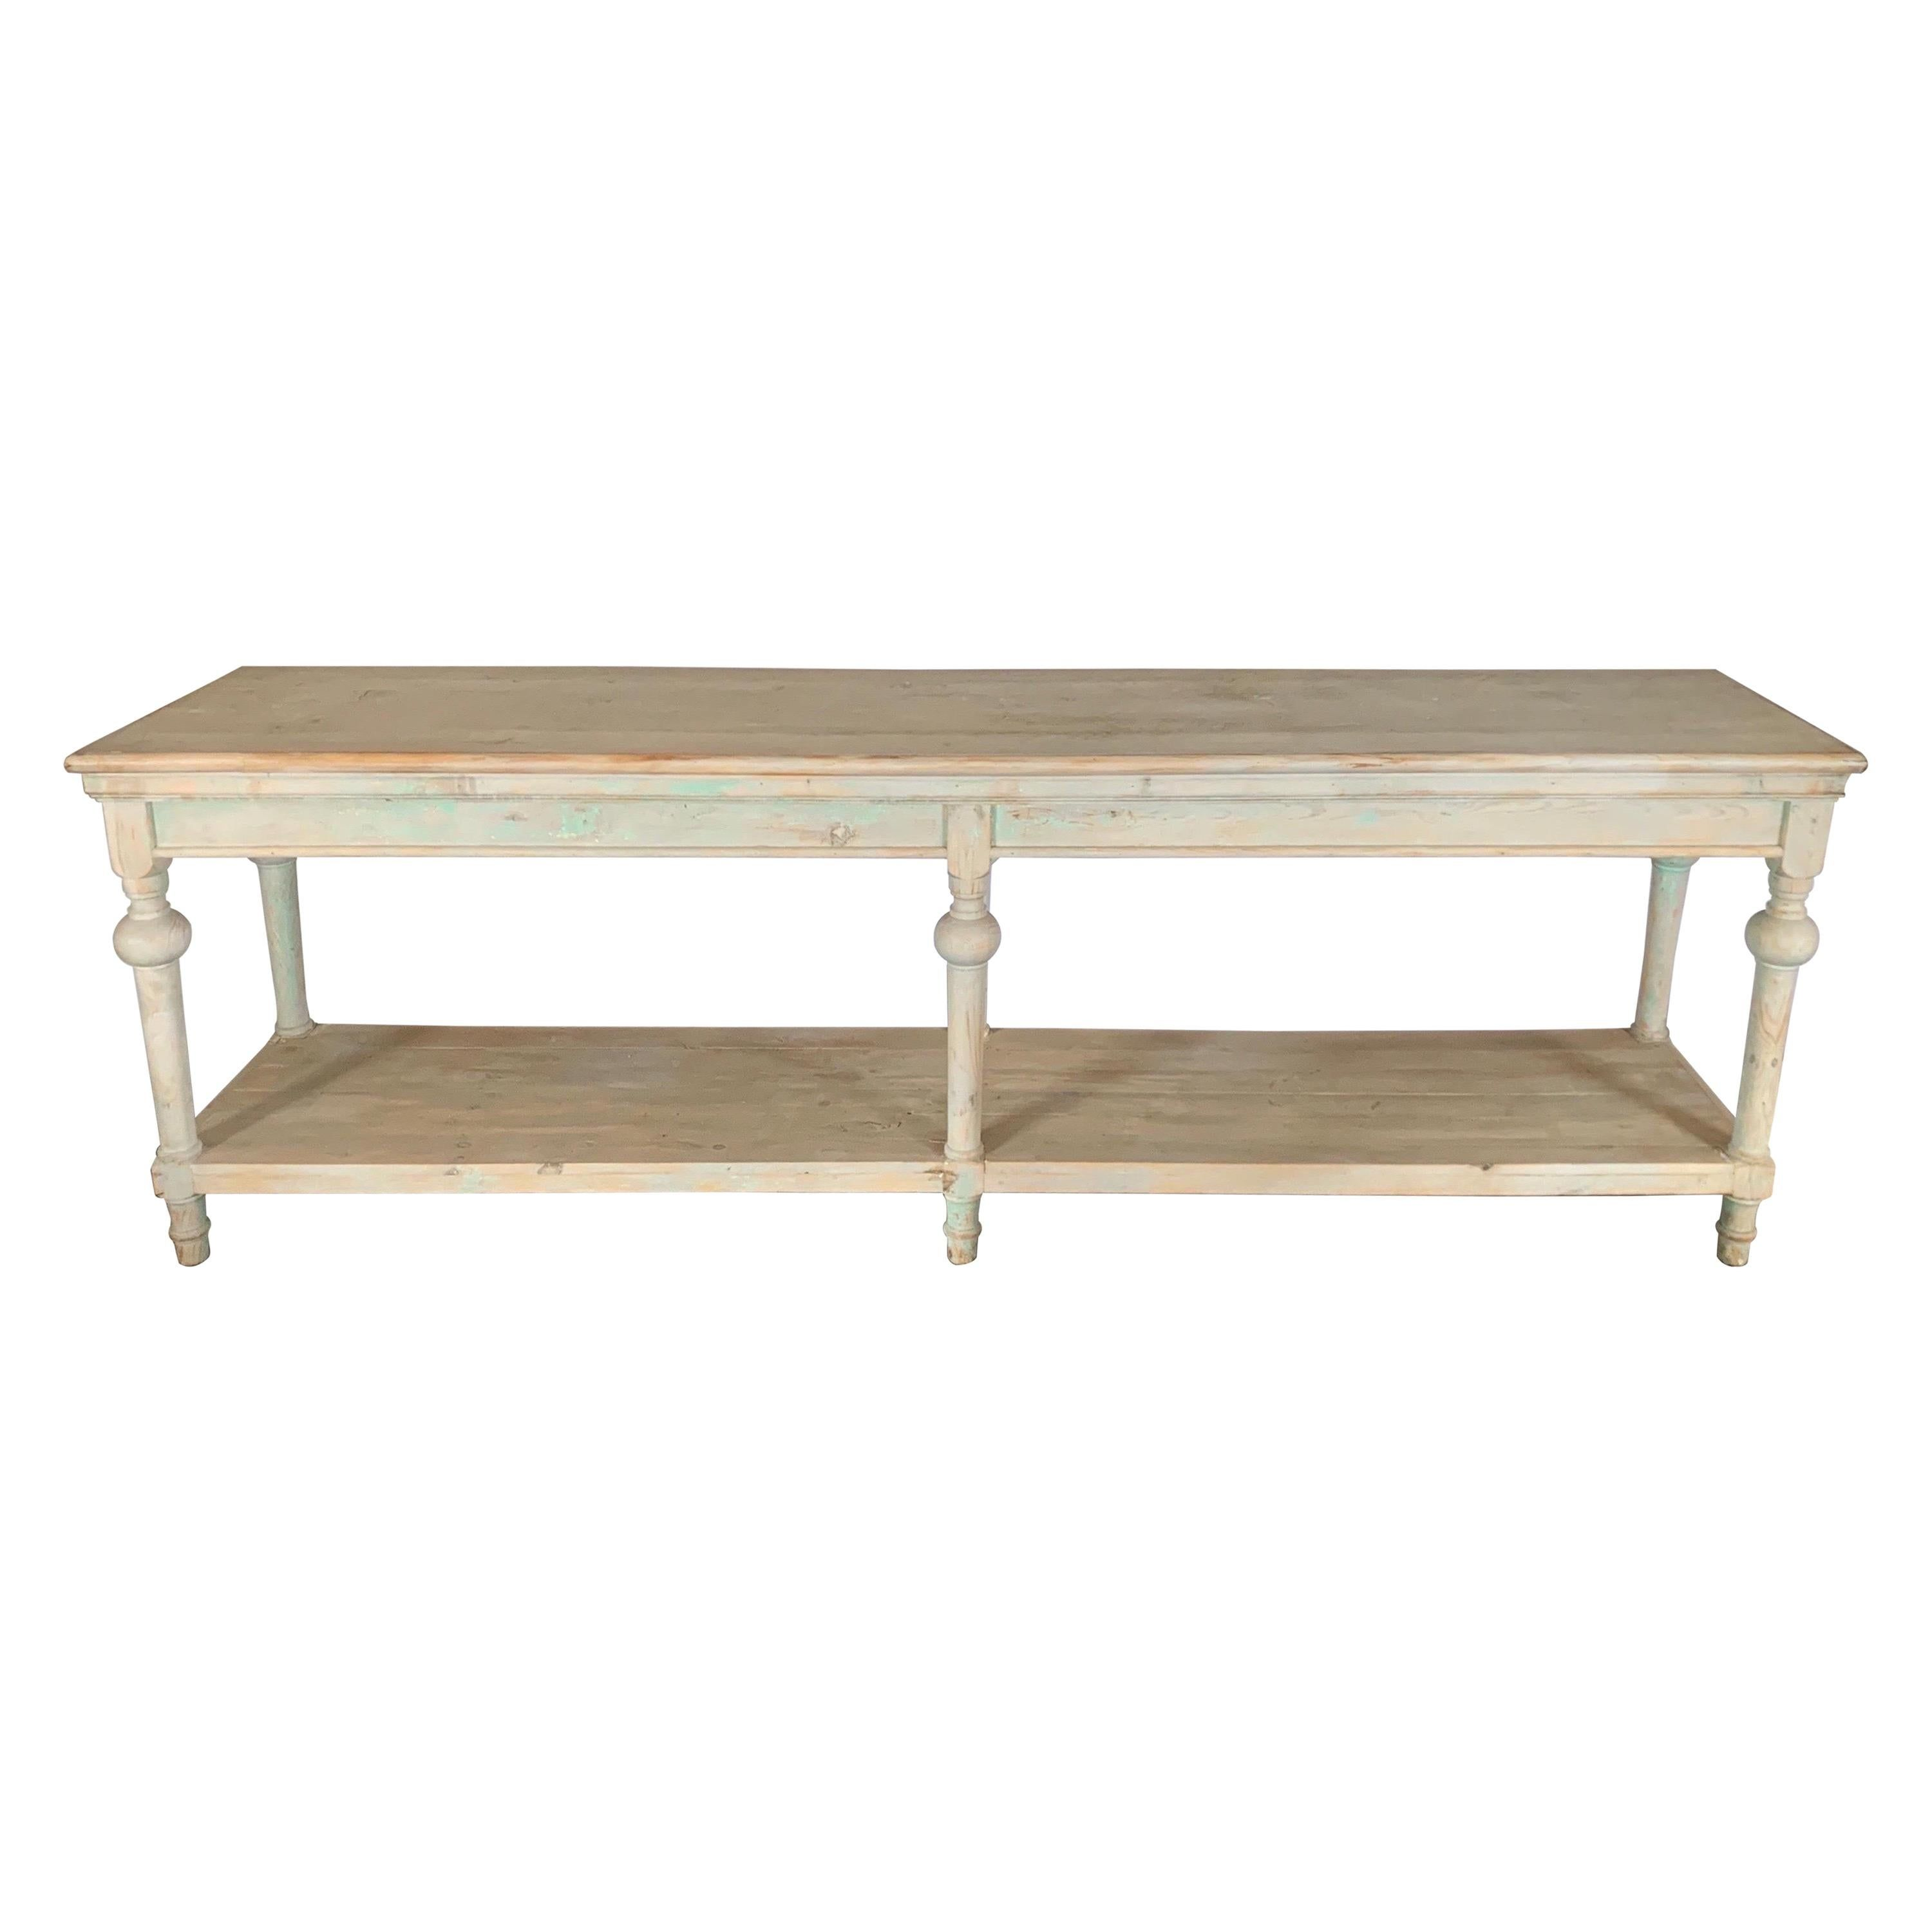 Spanish Vintage Bleached Pine Painted Console Table With Bottom Shelf In 2020 Console Table Shelves For Sale Table